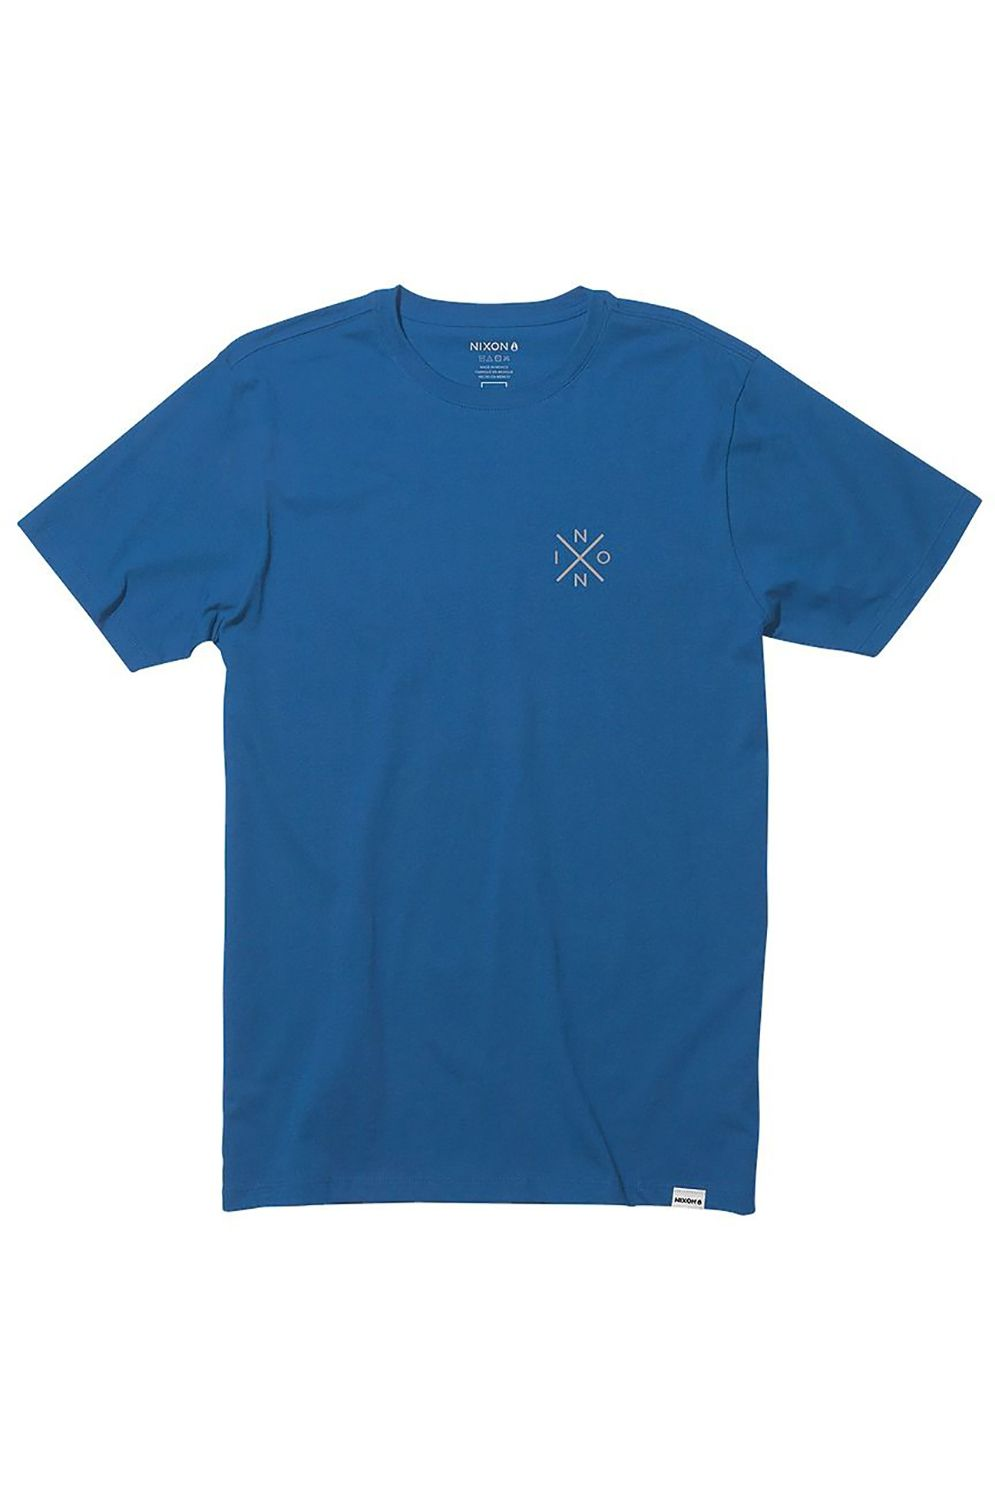 T-Shirt Nixon SPOT II Royal